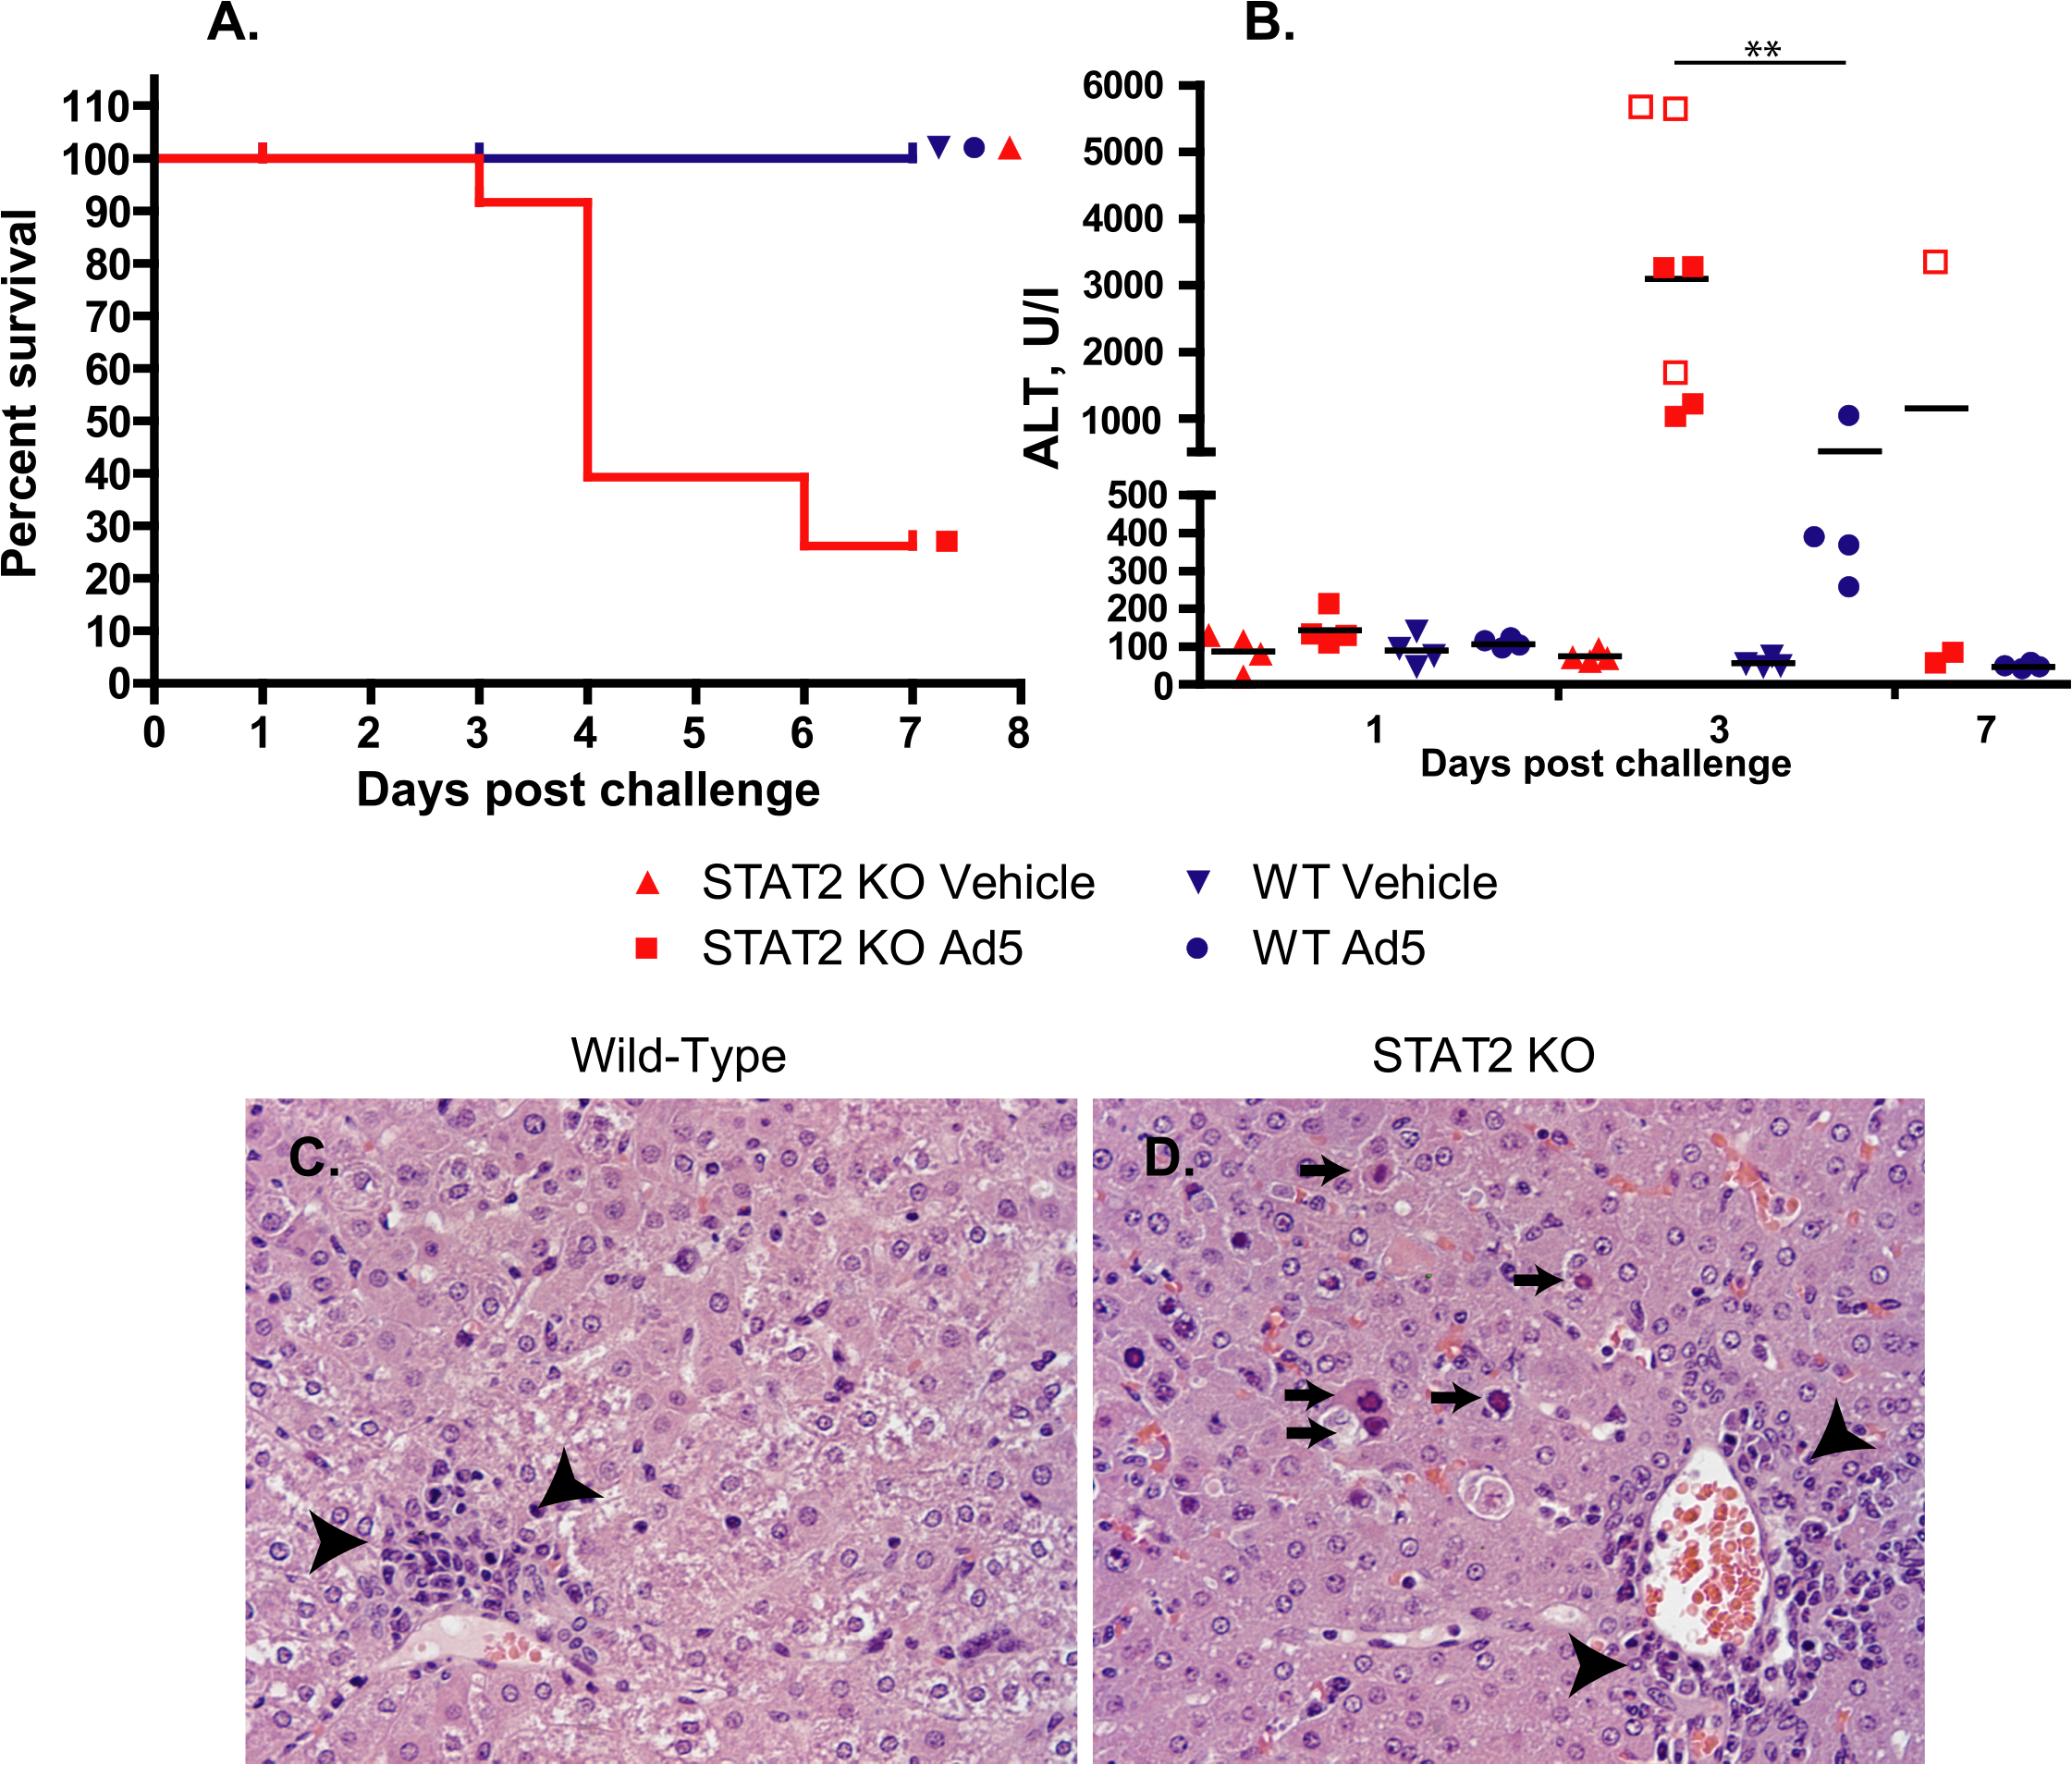 Ad5 infection causes increased pathology with STAT2 KO hamsters compared to wt ones.